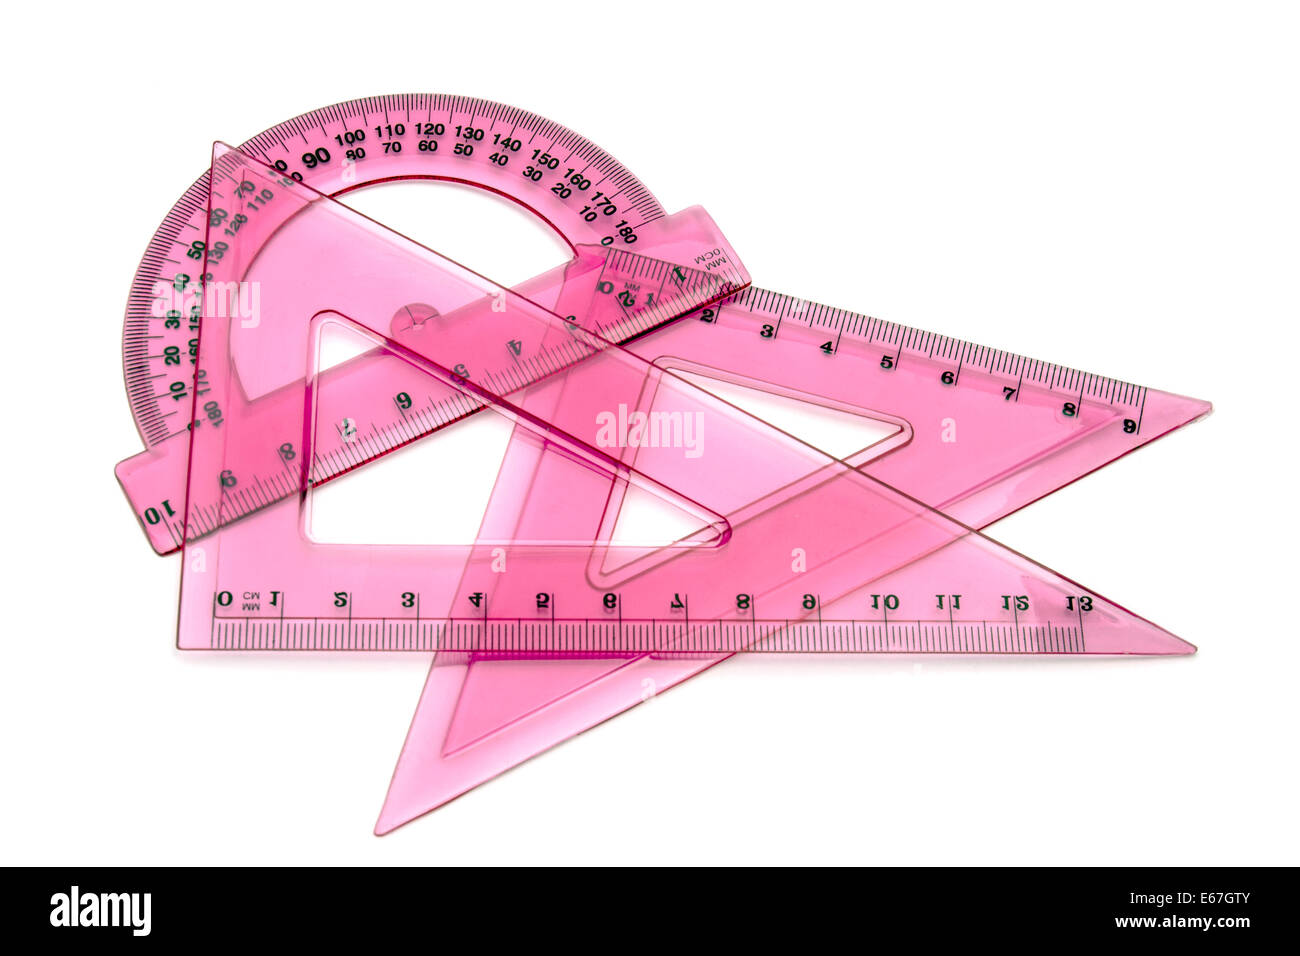 Pink rulers isolated on white background Stock Photo